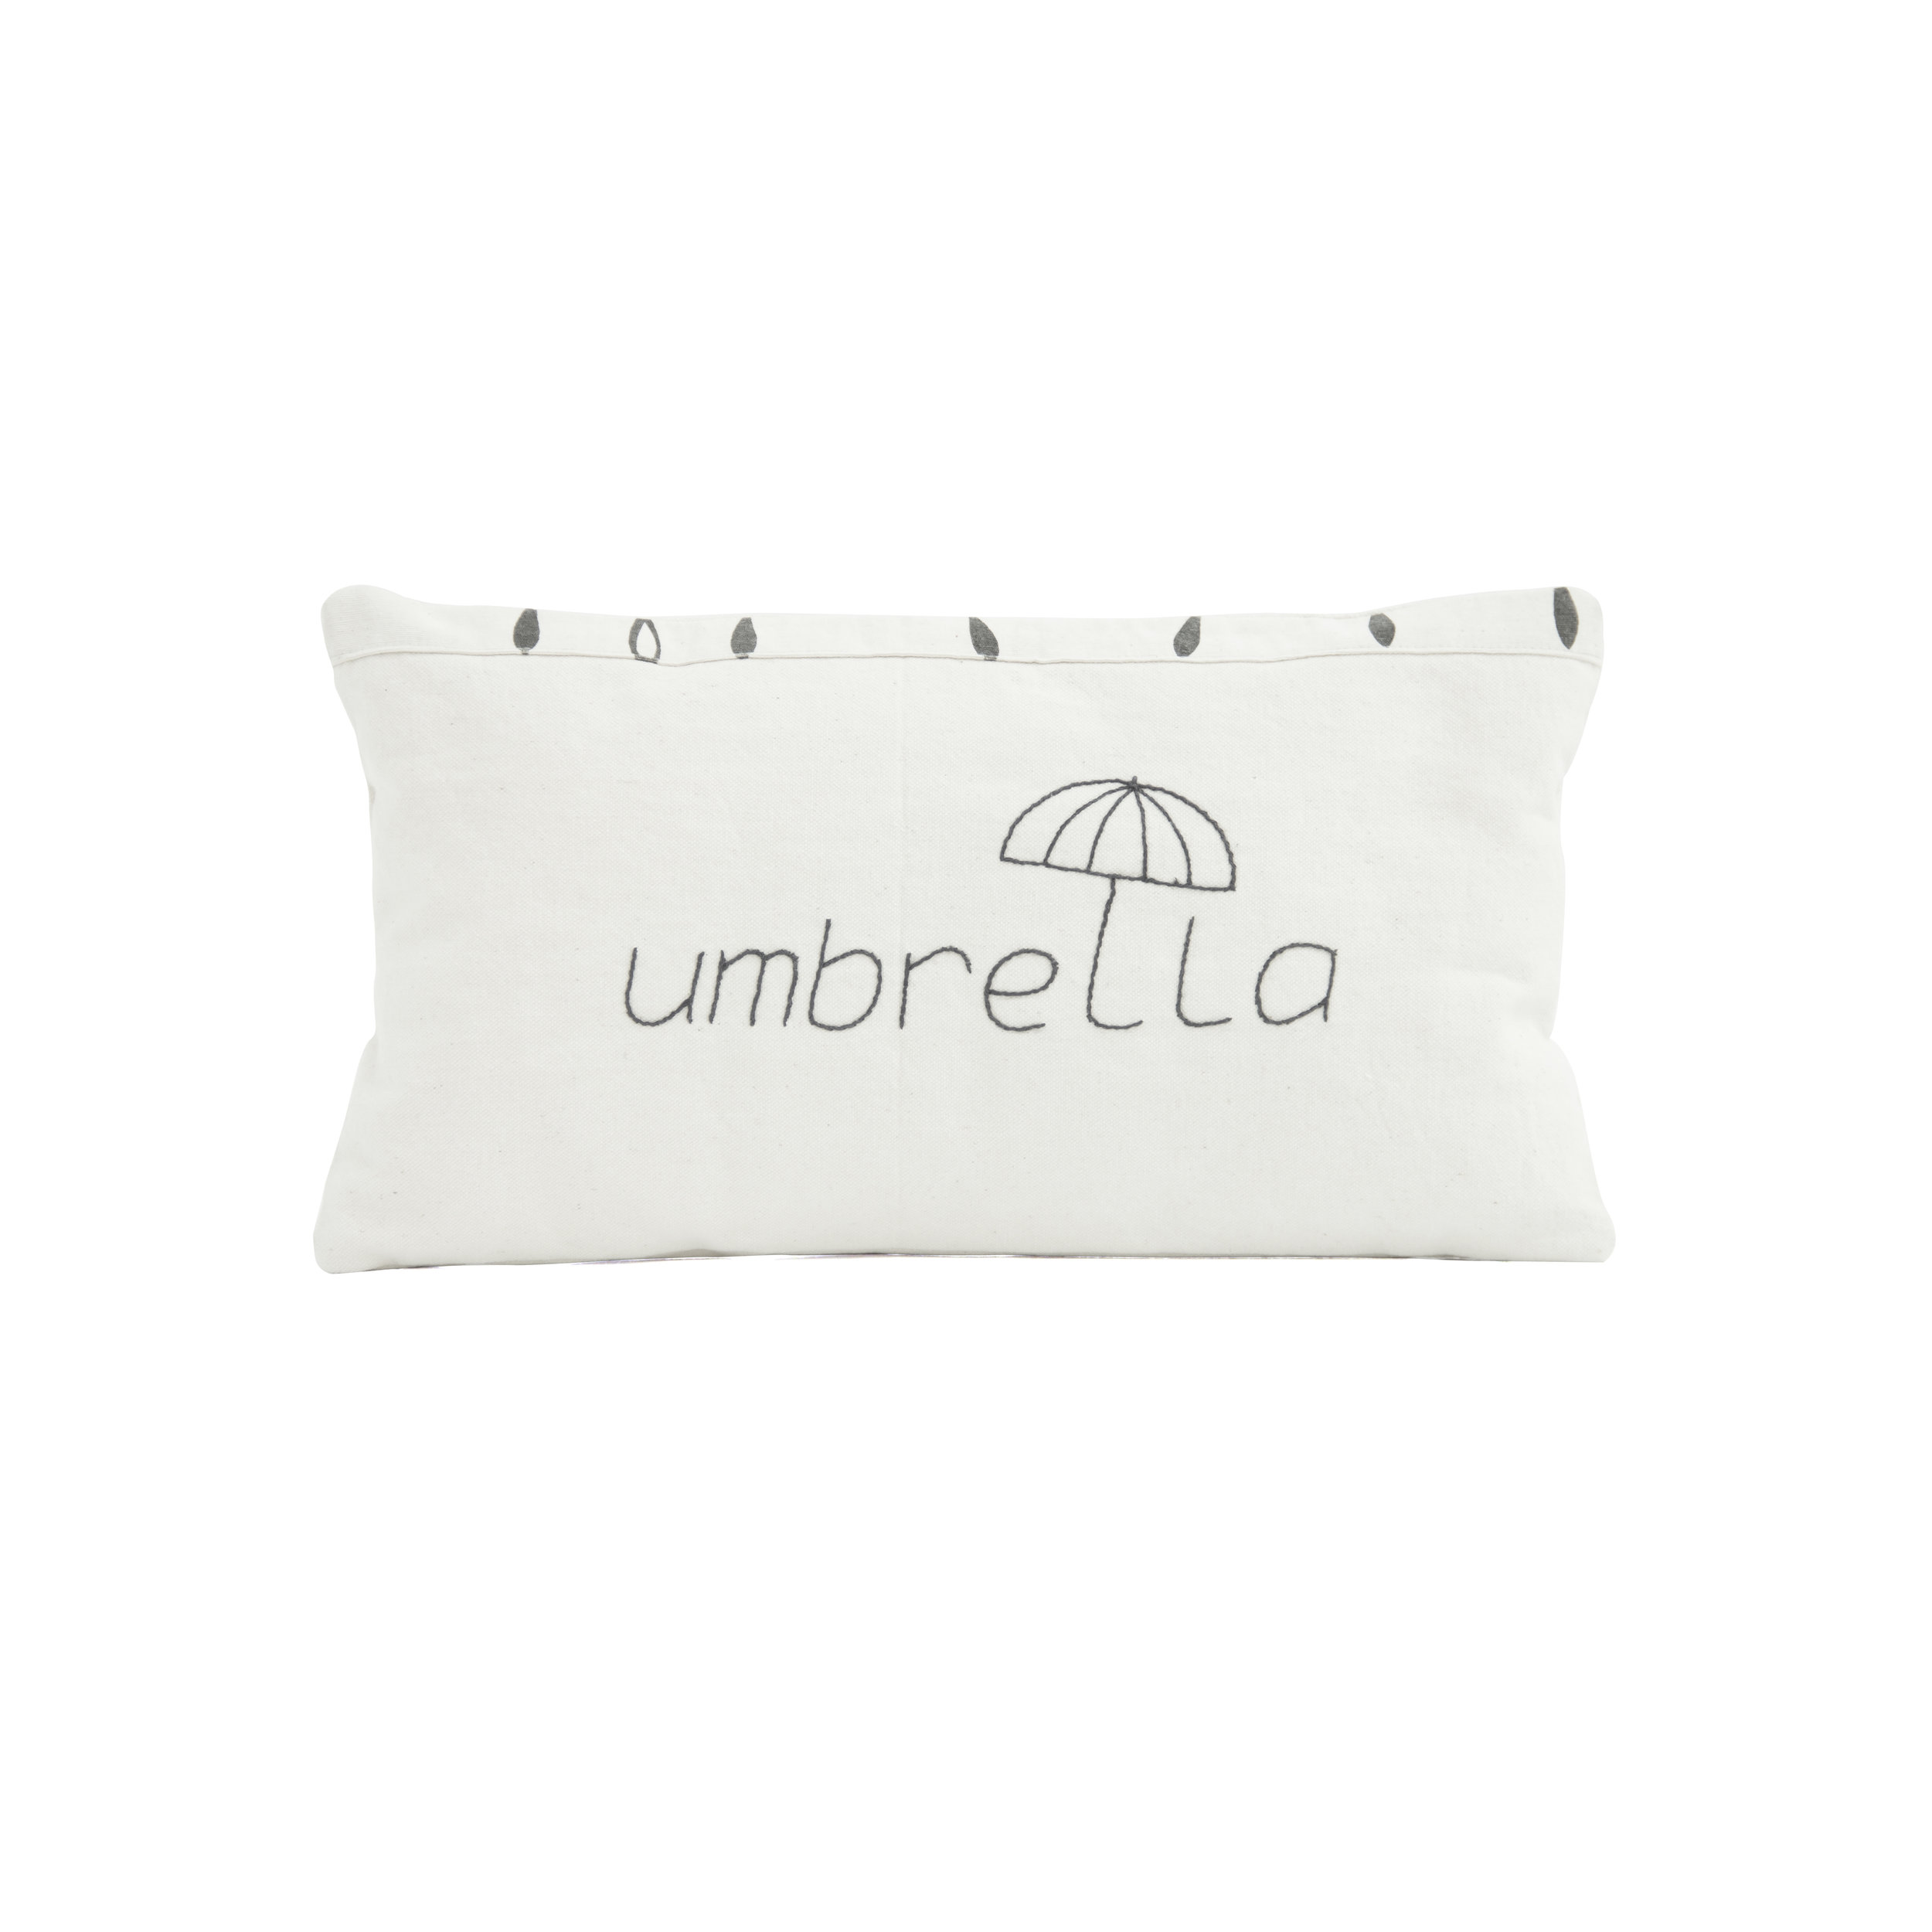 KH_Cushion_Umbrella.jpg